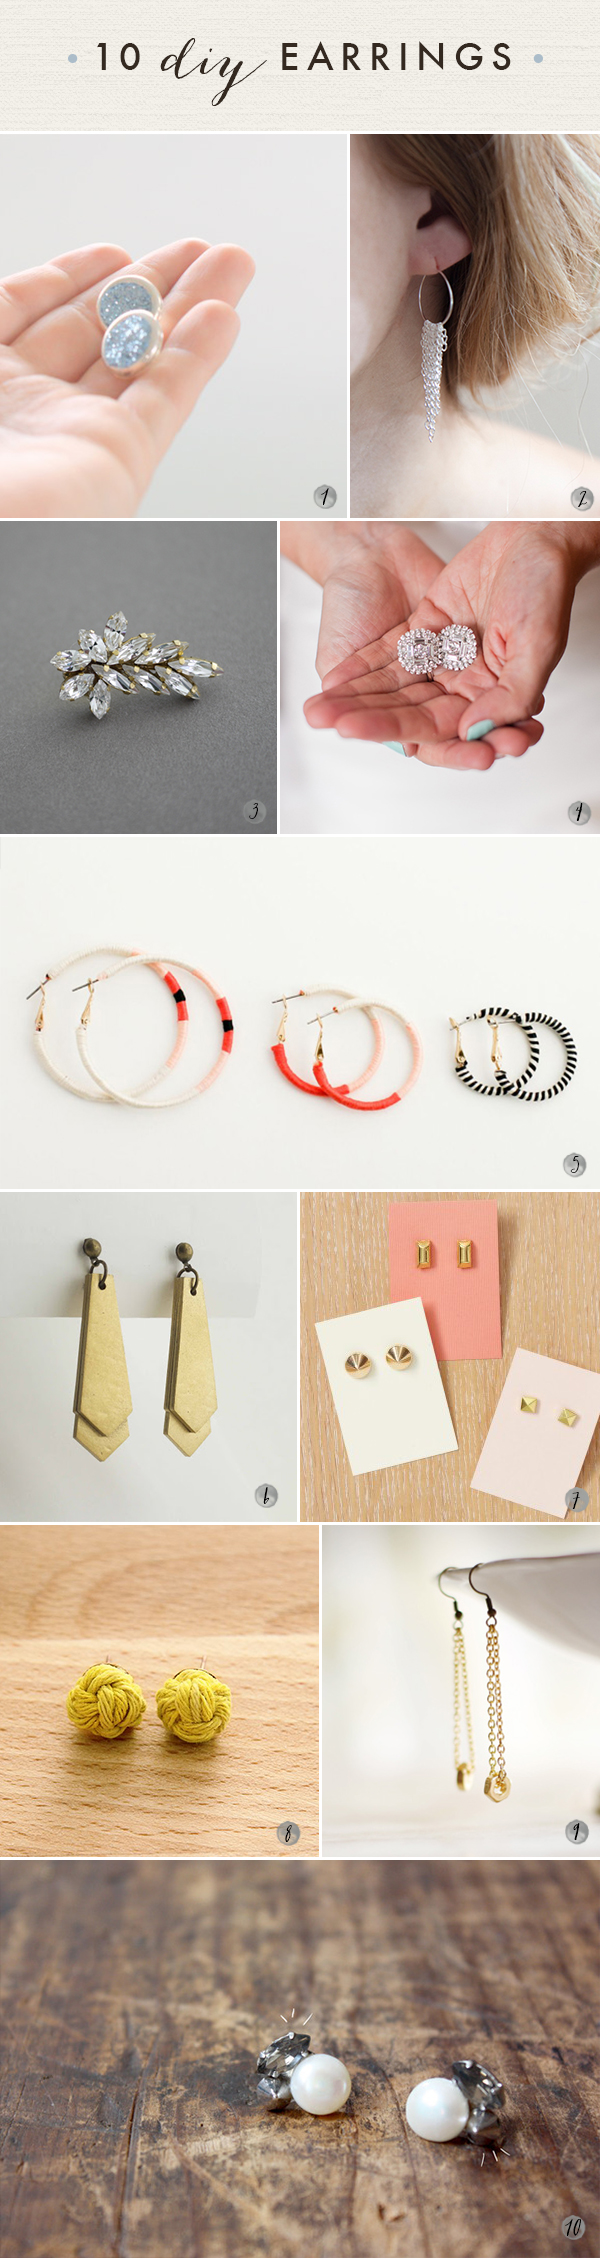 10-diy-earrings (1)